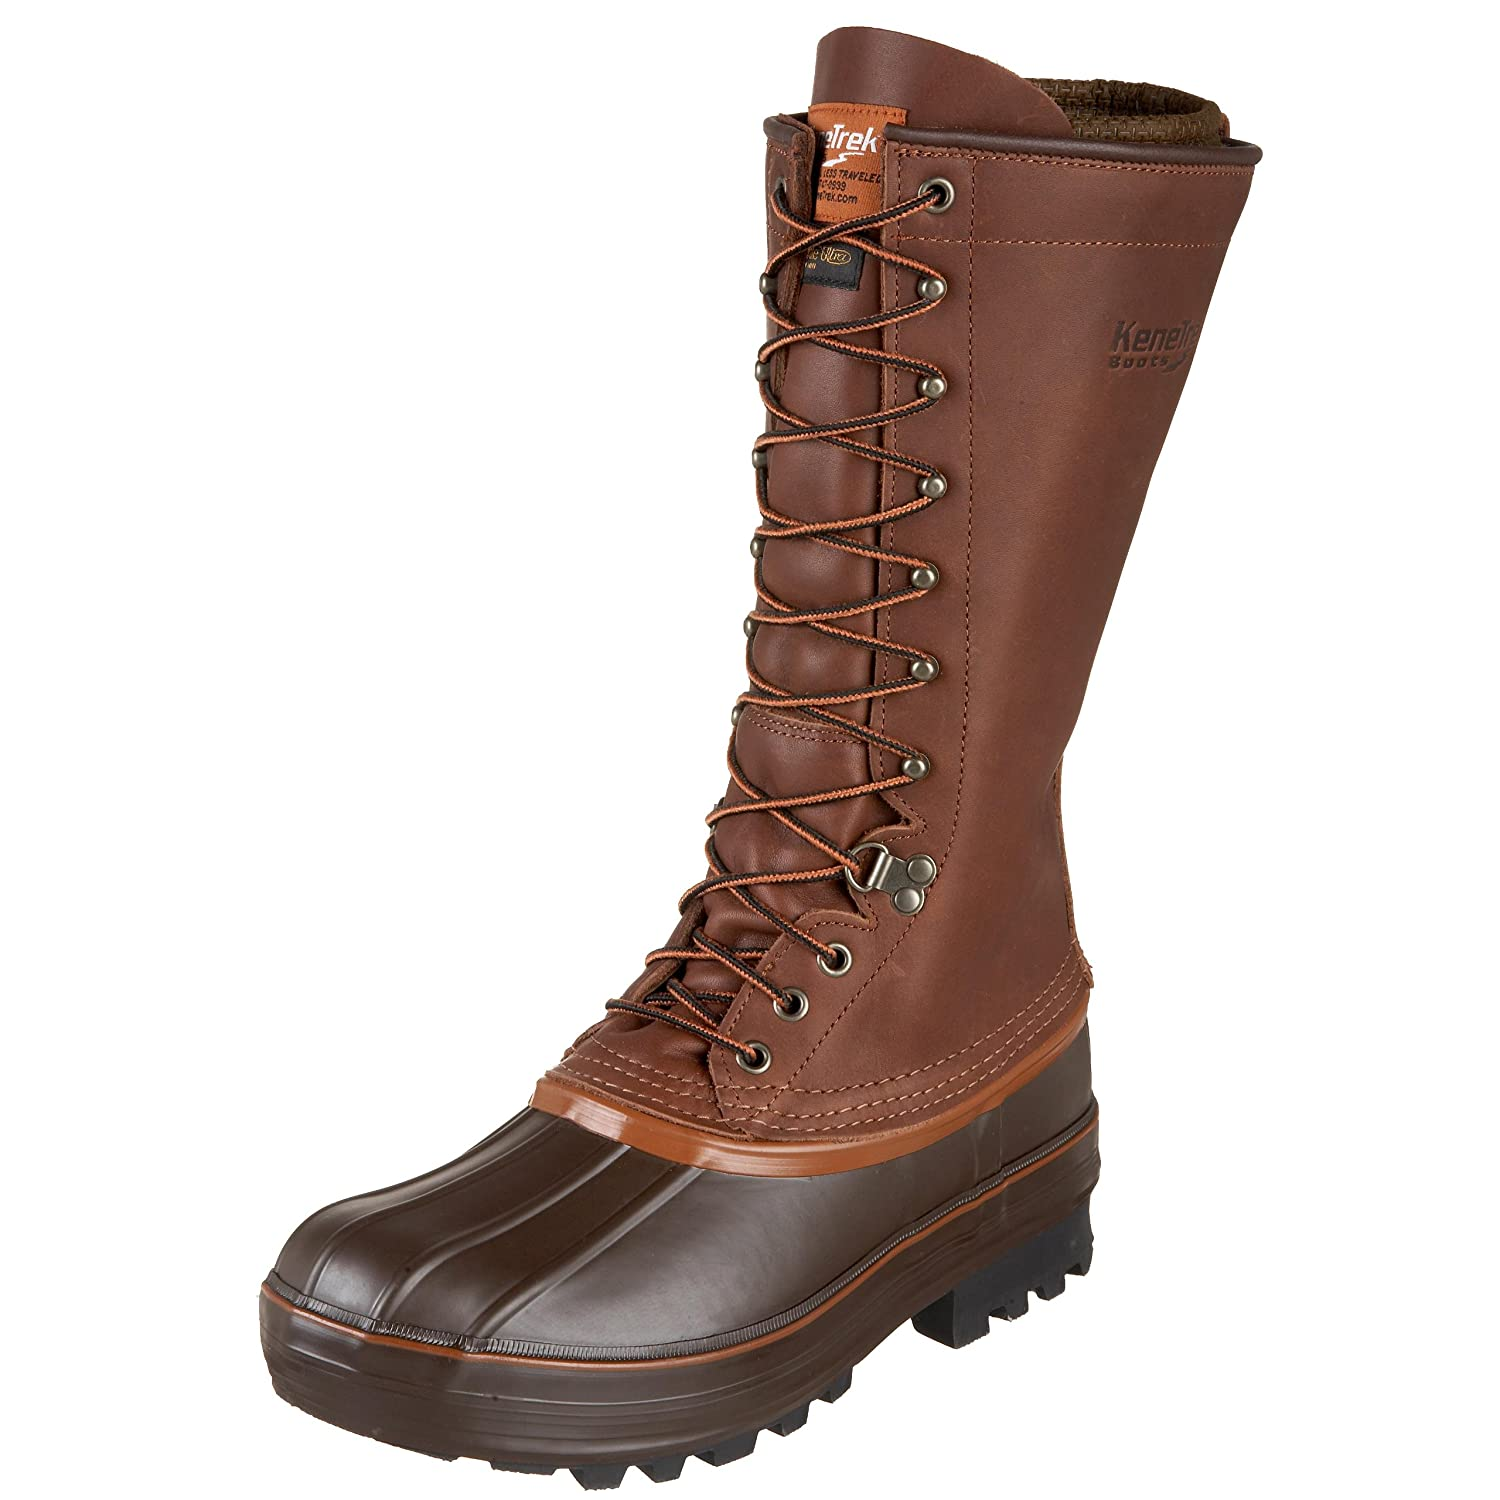 Kenetrek Unisex 13 Inch Grizzly Insulated Boot B001KQ1HD2 15 M US|Brown